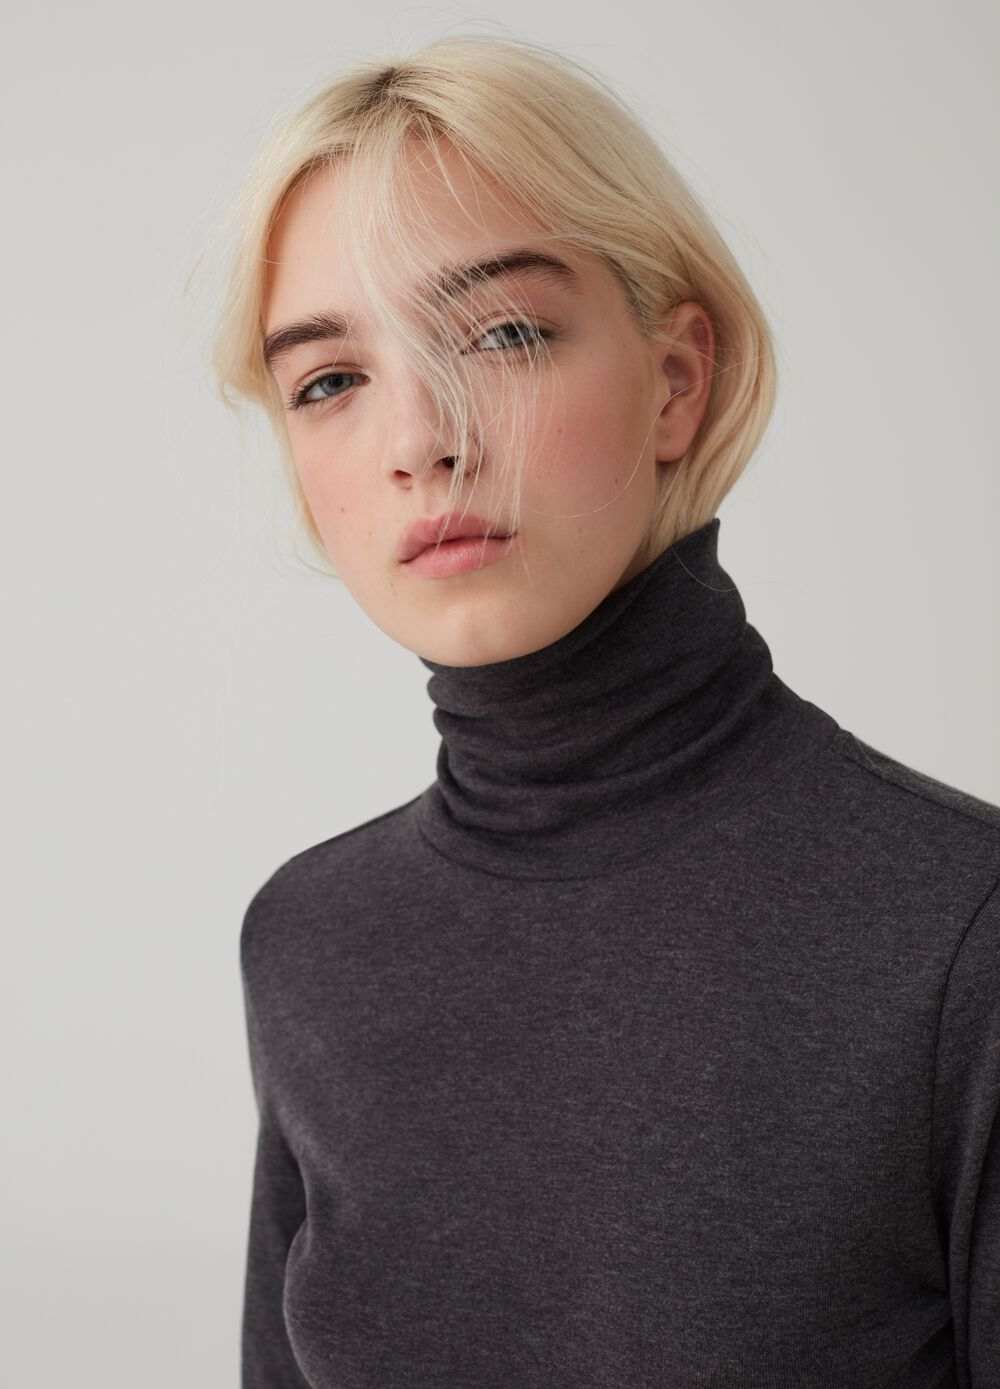 Turtleneck jumper with long sleeves